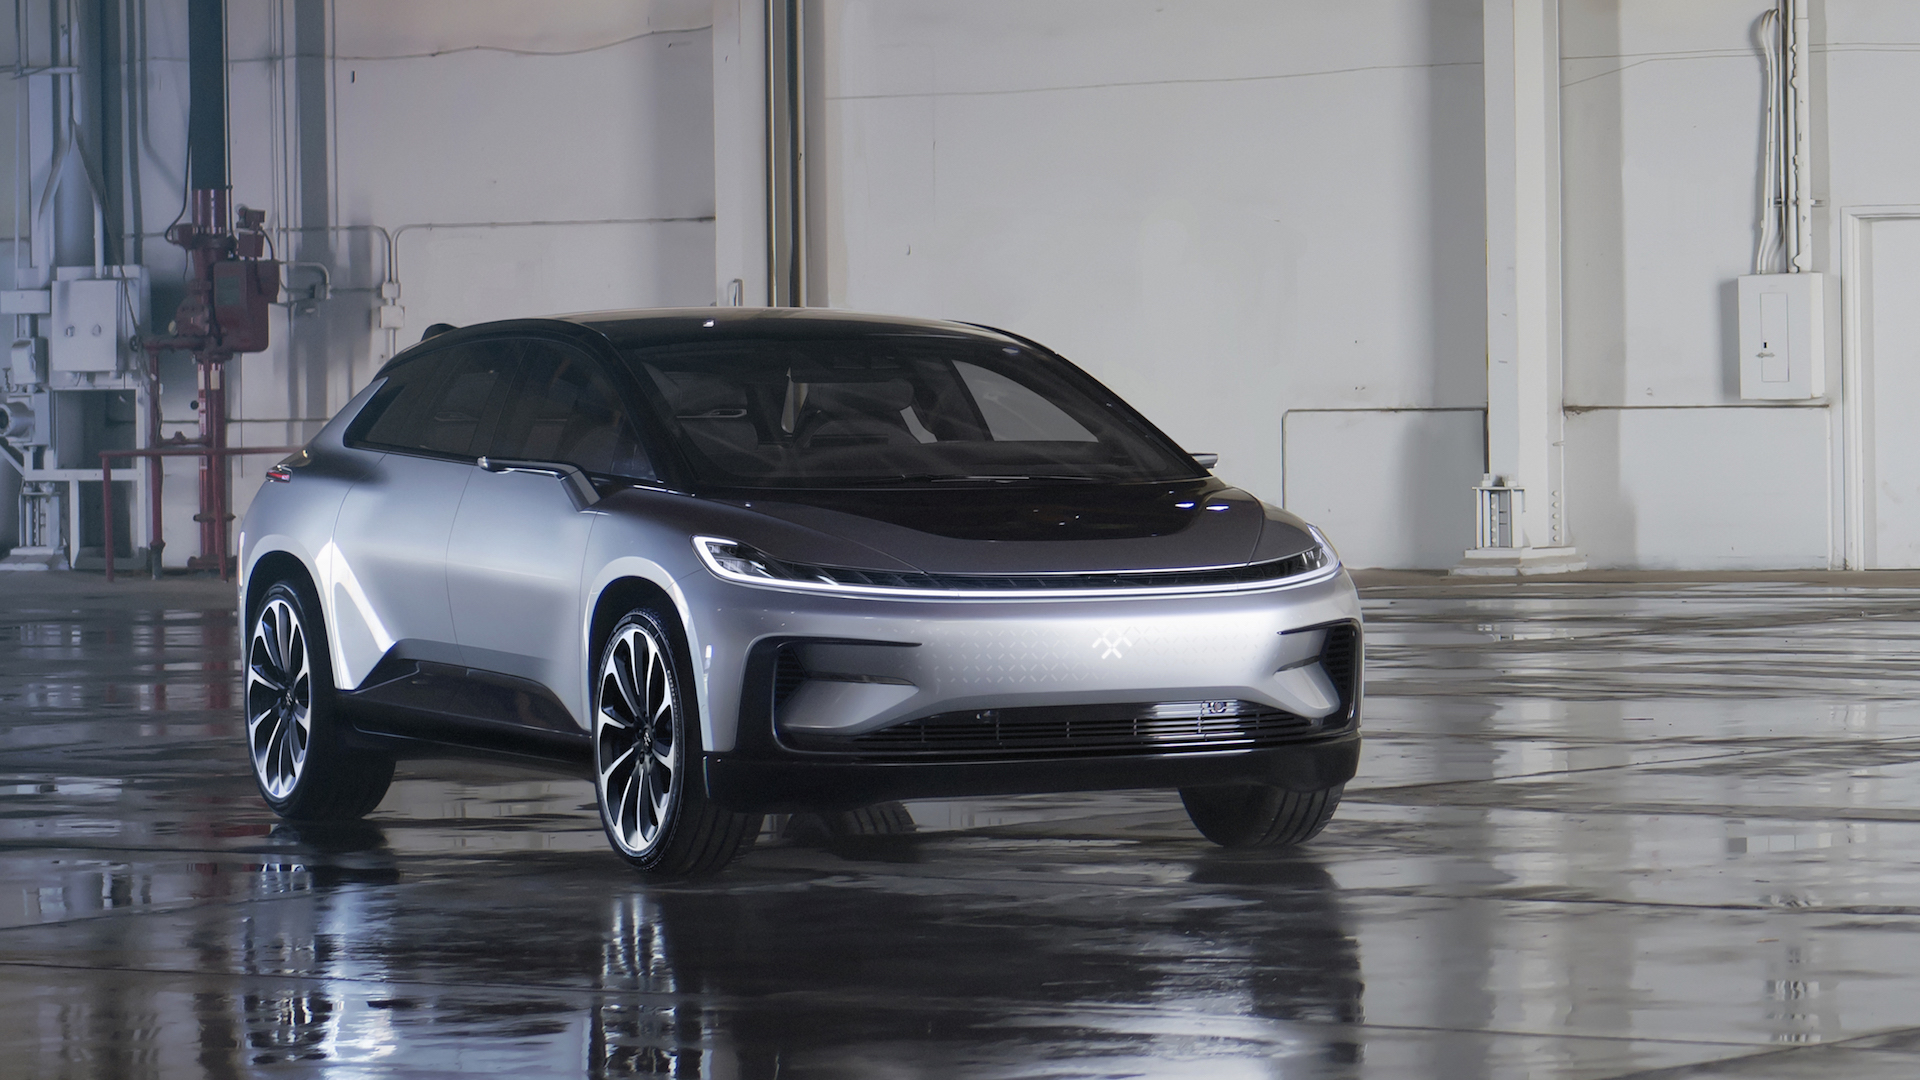 Faraday Future Unveils Ff 91 Its First Production Electric Car Deposits Open No Price Given